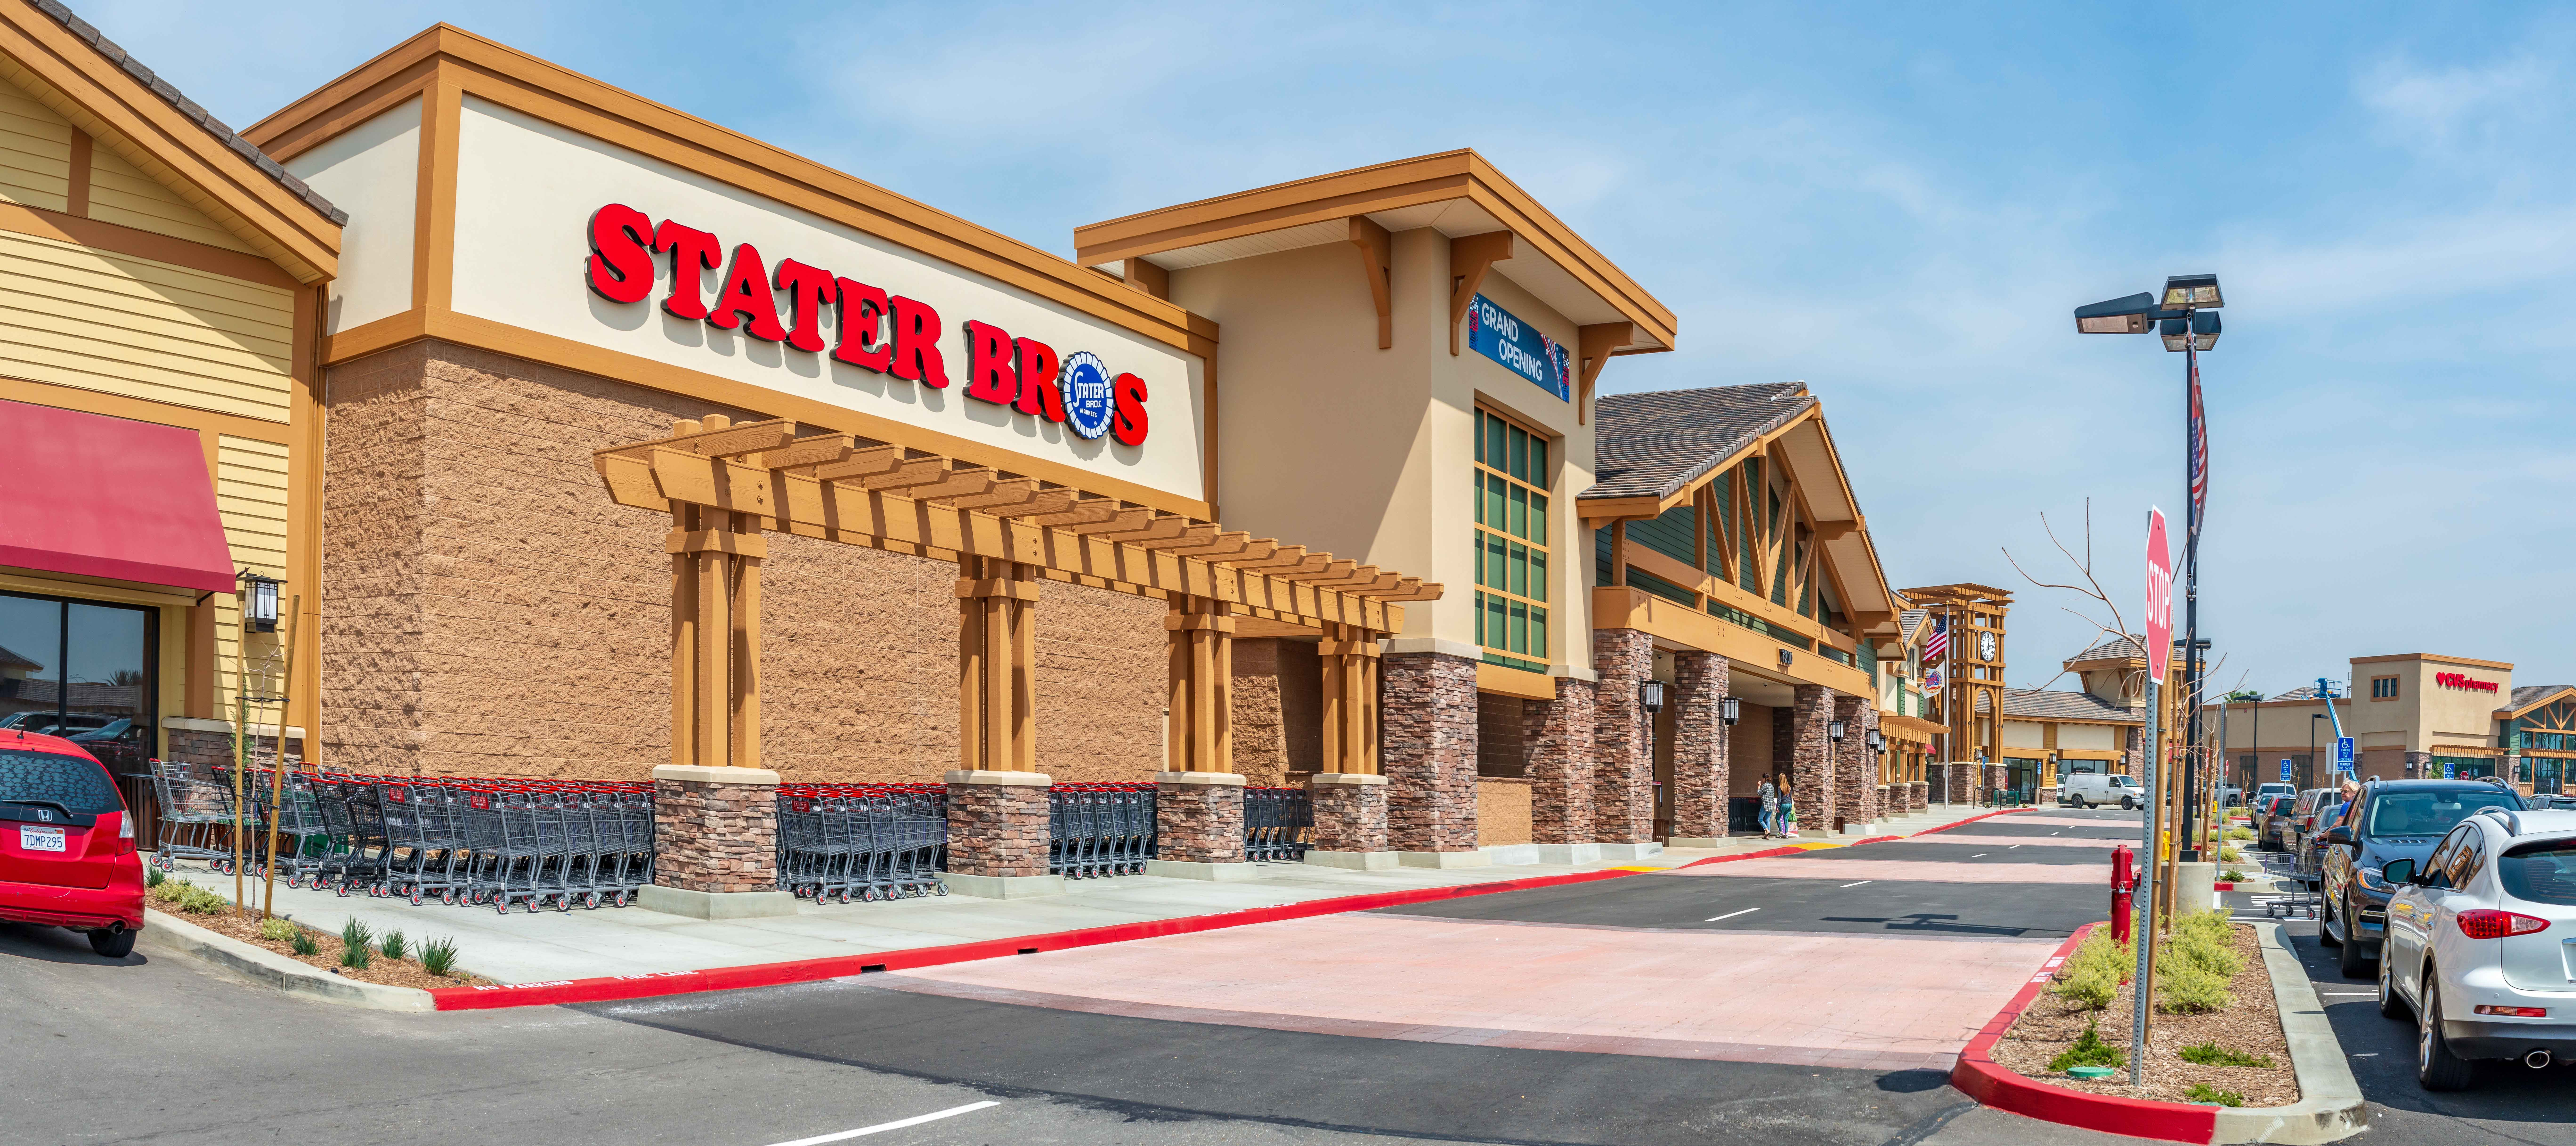 day creek marketplace lewis retail centers retail center